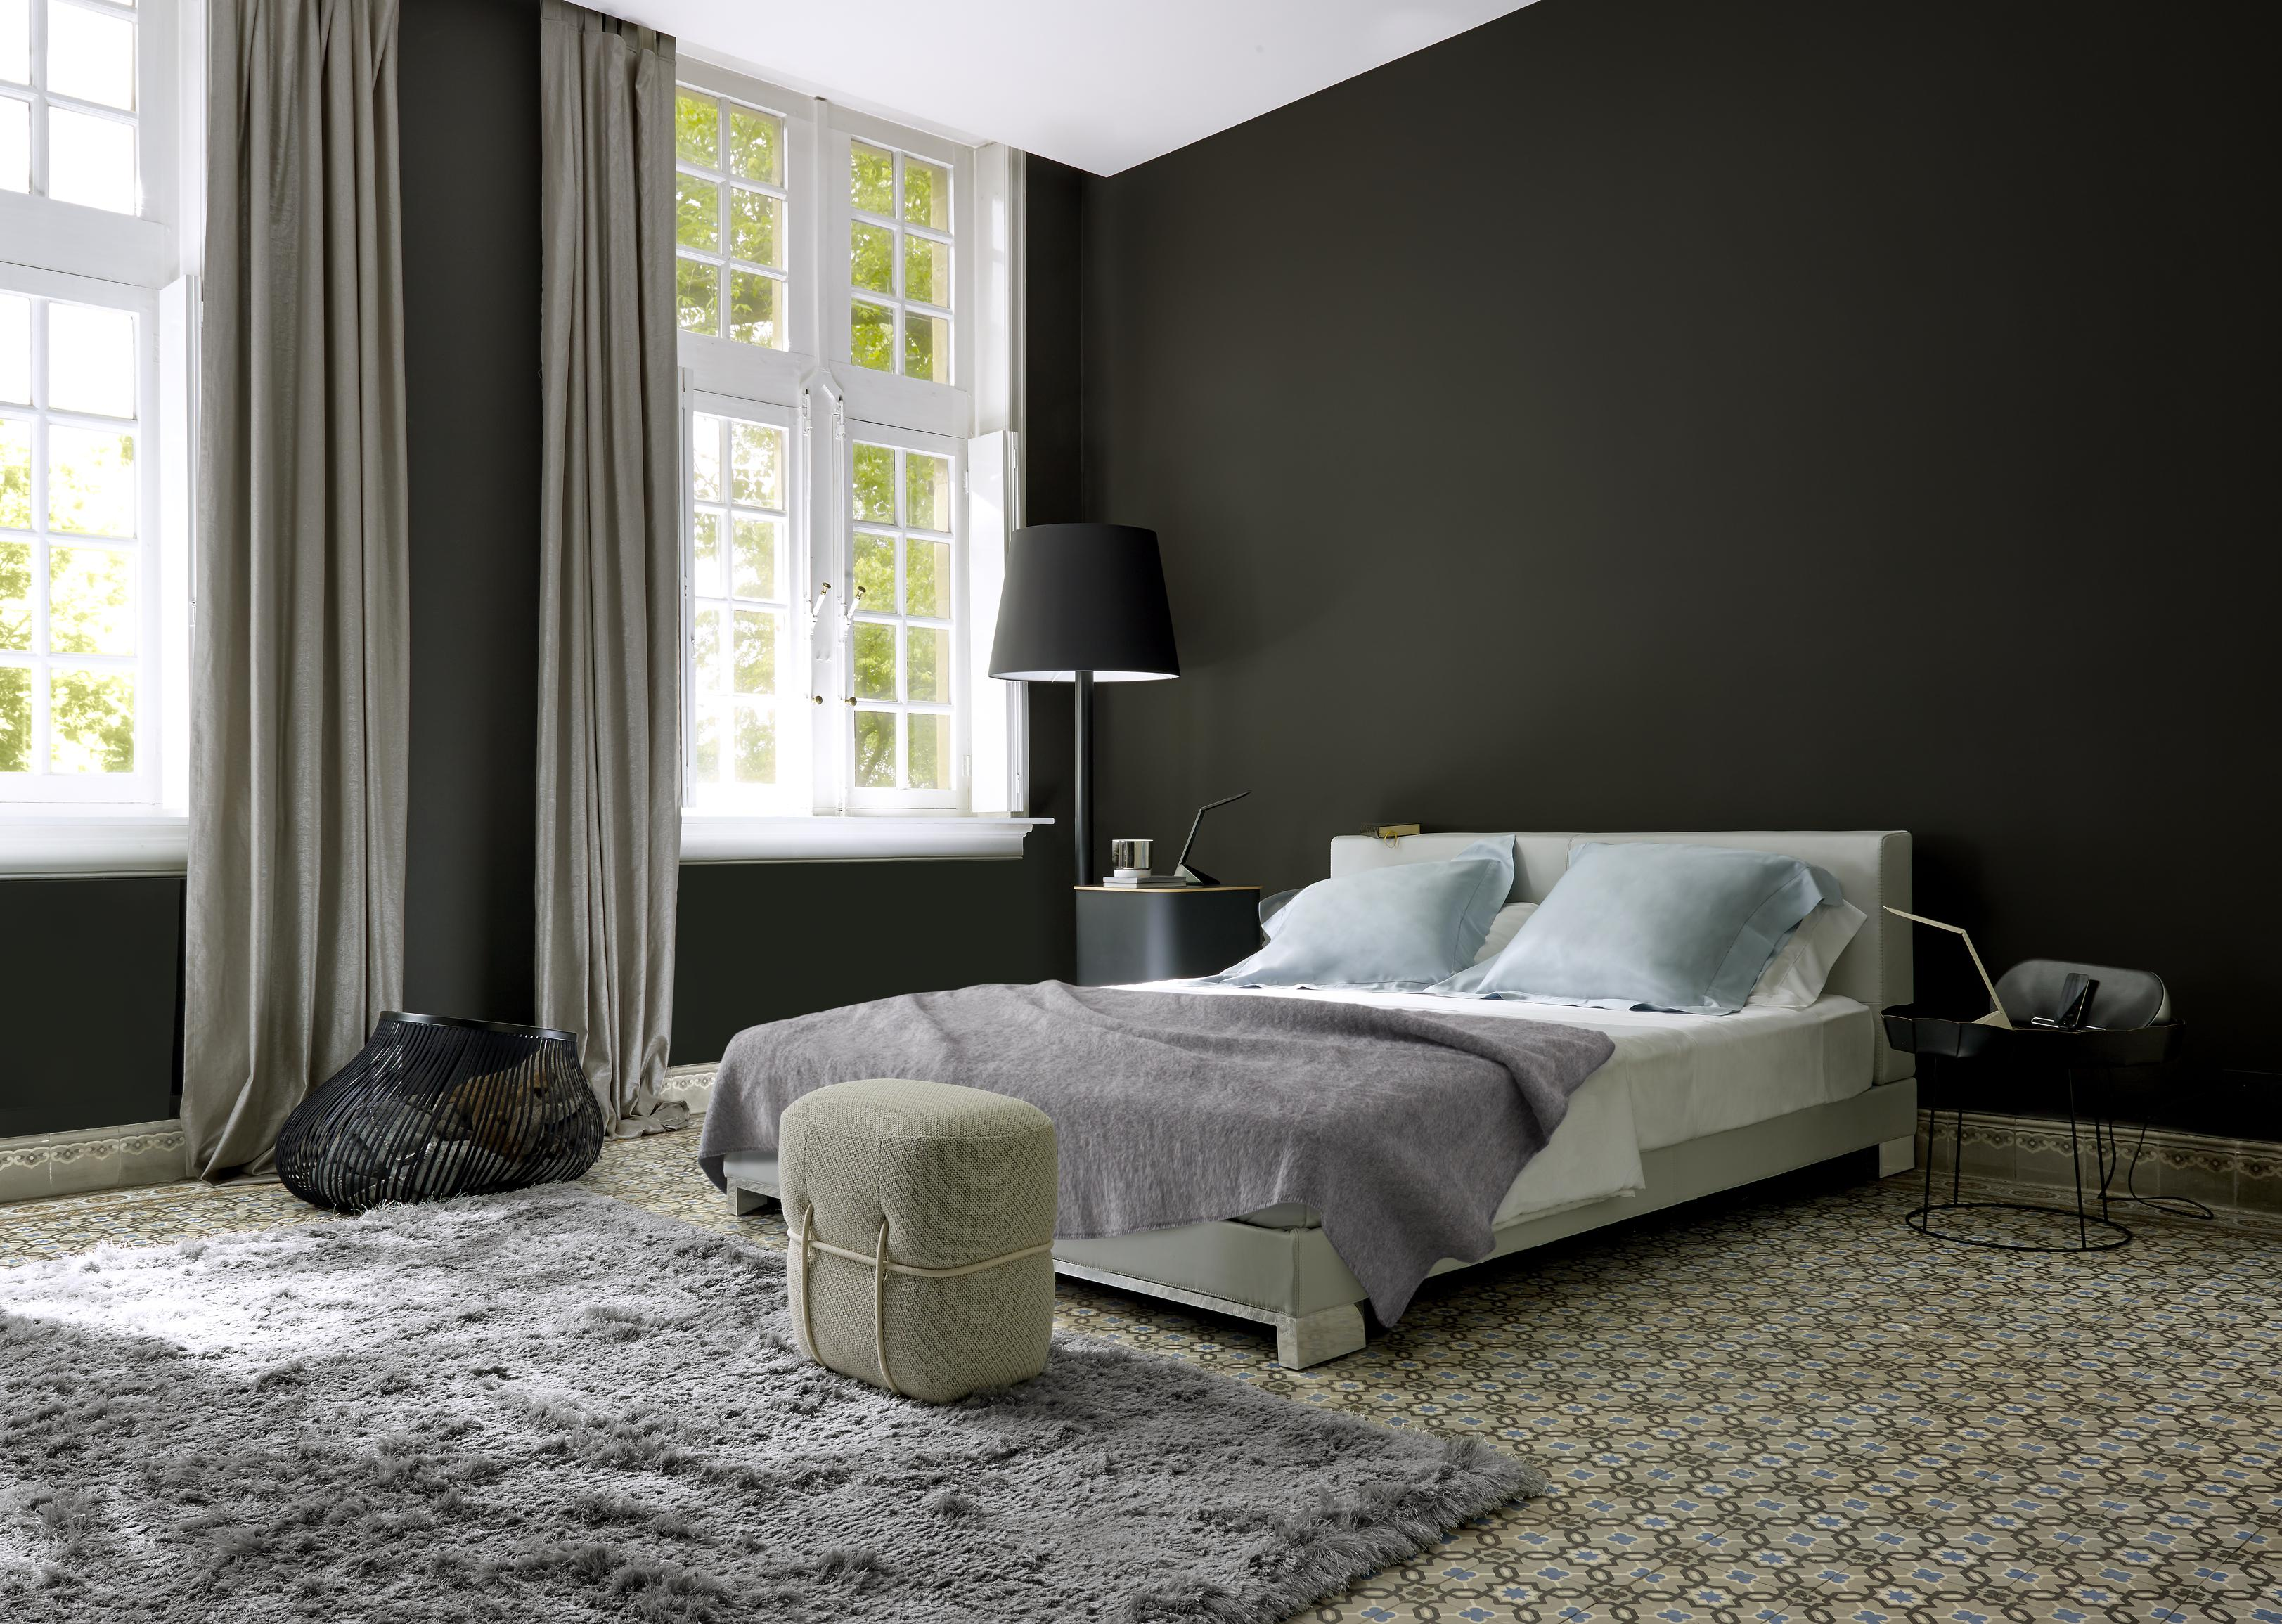 anna betten designer christian werner ligne roset. Black Bedroom Furniture Sets. Home Design Ideas